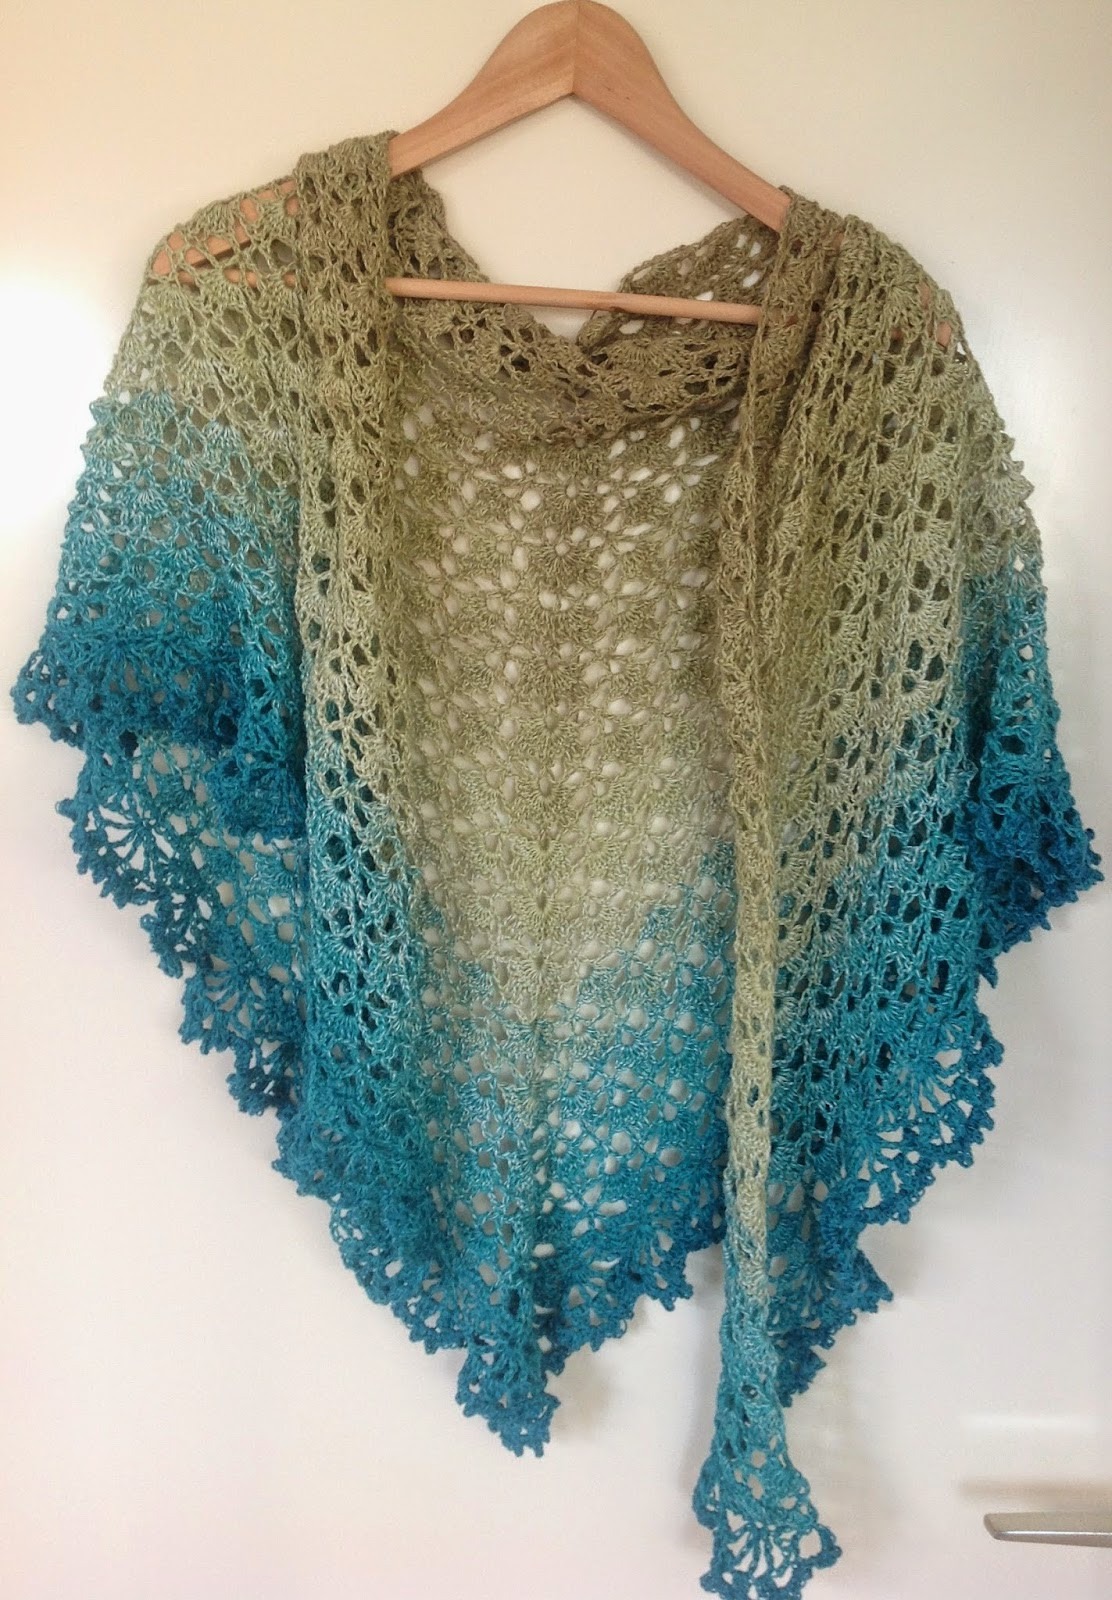 Crochet Shawl Pattern Inspirational K Van Kneuterig Crochet Shawl Of Wonderful 50 Pics Crochet Shawl Pattern